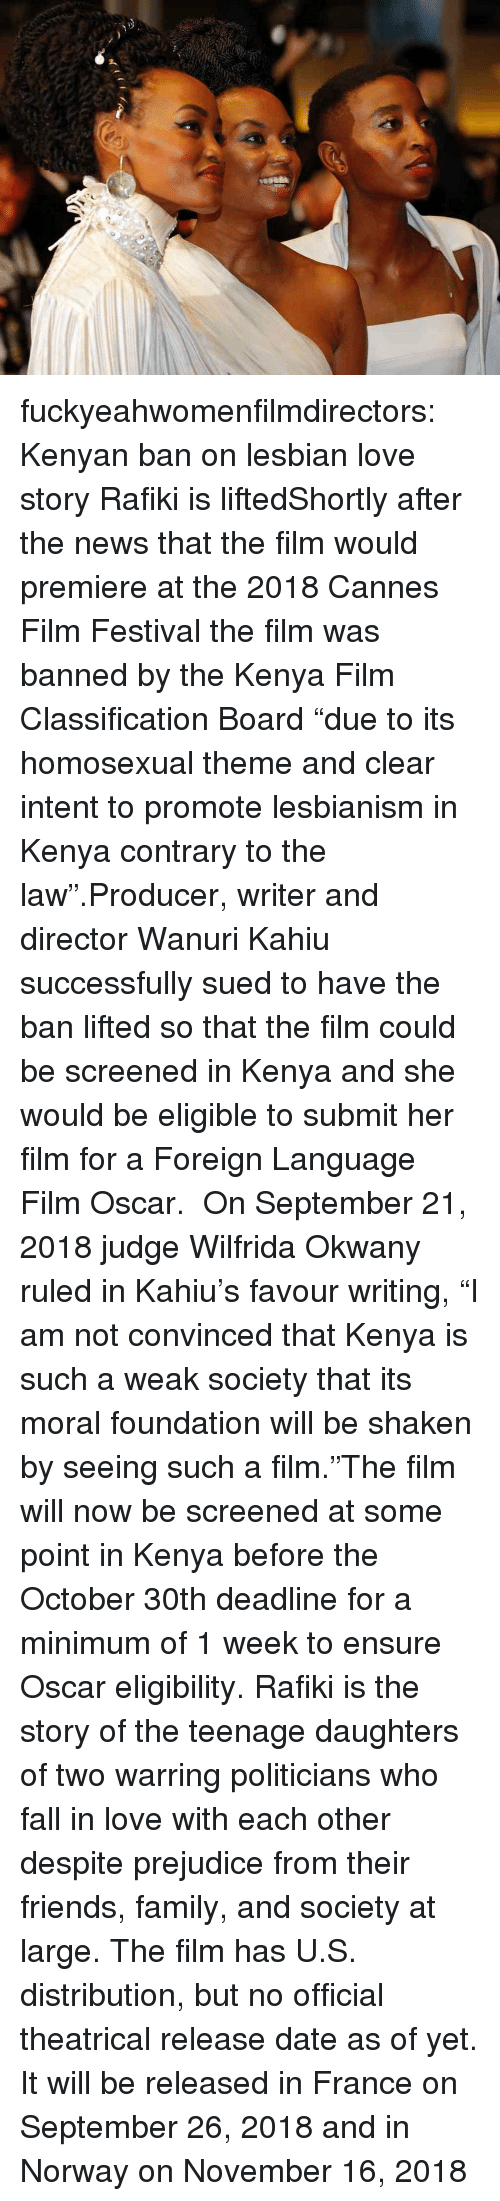 "Kenyan: fuckyeahwomenfilmdirectors:  Kenyan ban on lesbian love story Rafiki is liftedShortly after the news that the film would premiere at the 2018 Cannes Film Festival the film was banned by the Kenya Film Classification Board ""due to its homosexual theme and clear intent to promote lesbianism in Kenya contrary to the law"".Producer, writer and director Wanuri Kahiu successfully sued to have the ban lifted so that the film could be screened in Kenya and she would be eligible to submit her film for a Foreign Language Film Oscar.  On September 21, 2018 judge Wilfrida Okwany ruled in Kahiu's favour writing, ""I am not convinced that Kenya is such a weak society that its moral foundation will be shaken by seeing such a film.""The film will now be screened at some point in Kenya before the October 30th deadline for a minimum of 1 week to ensure Oscar eligibility. Rafiki is the story of the teenage daughters of two warring politicians who fall in love with each other despite prejudice from their friends, family, and society at large. The film has U.S. distribution, but no official theatrical release date as of yet. It will be released in France on September 26, 2018 and in Norway on November 16, 2018"